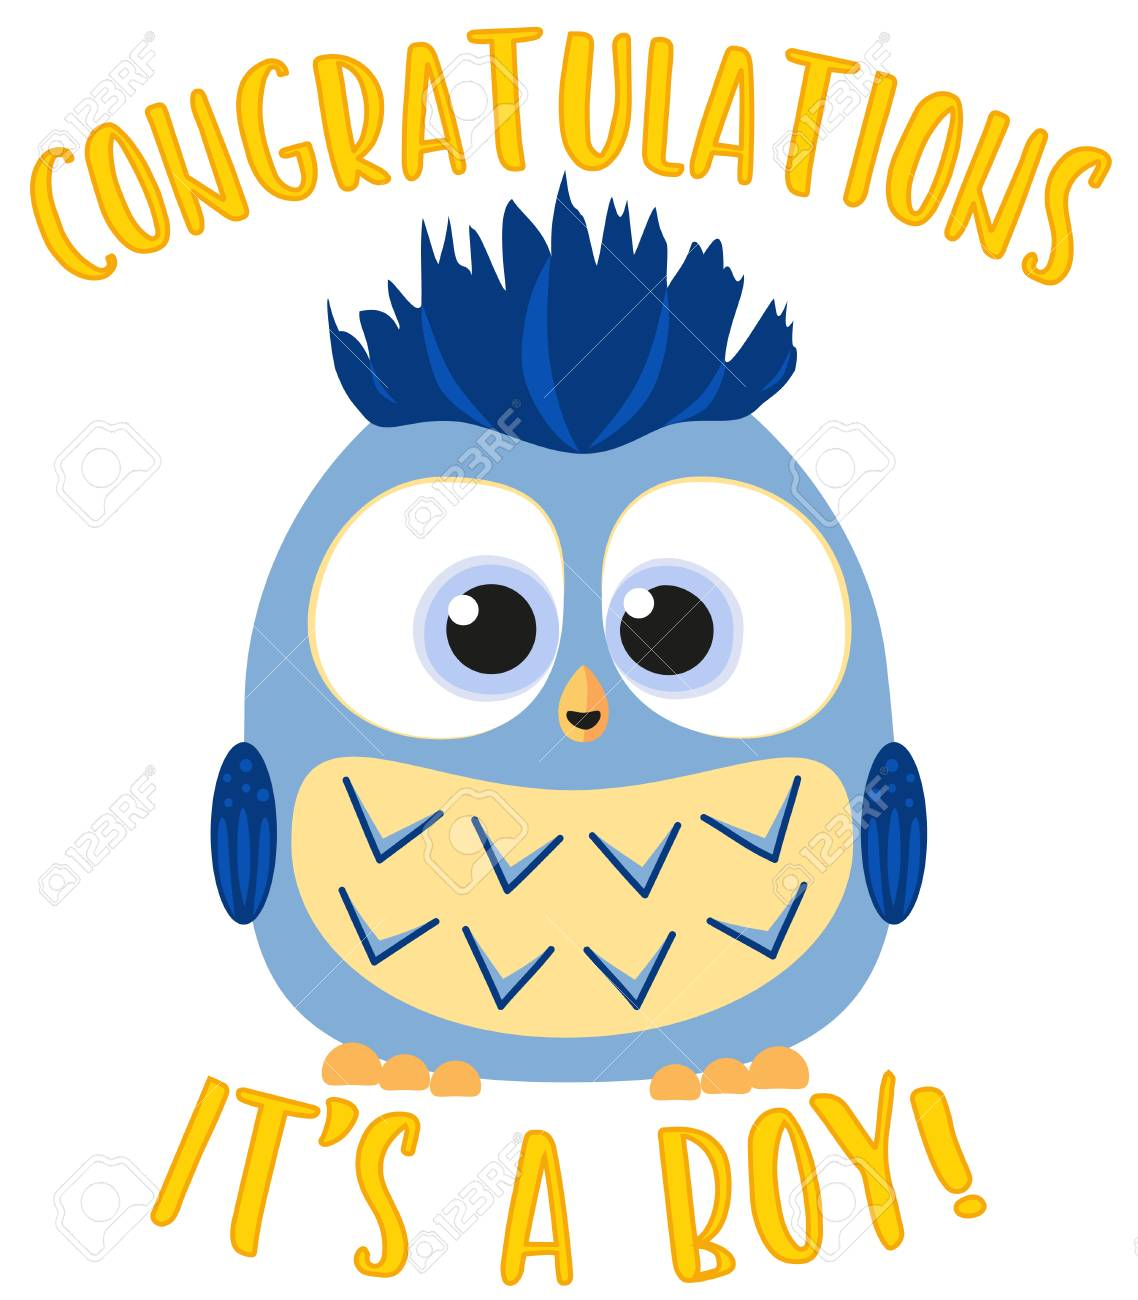 Exciting Congratulations It S A Boy Colorful Baby Boy Birthdaymed Flat Vector Congratulations It S A Boy Colorful Baby Boy Owl Congratulations Baby Boy Ny Congratulations Baby Boy S baby shower Congratulations Baby Boy